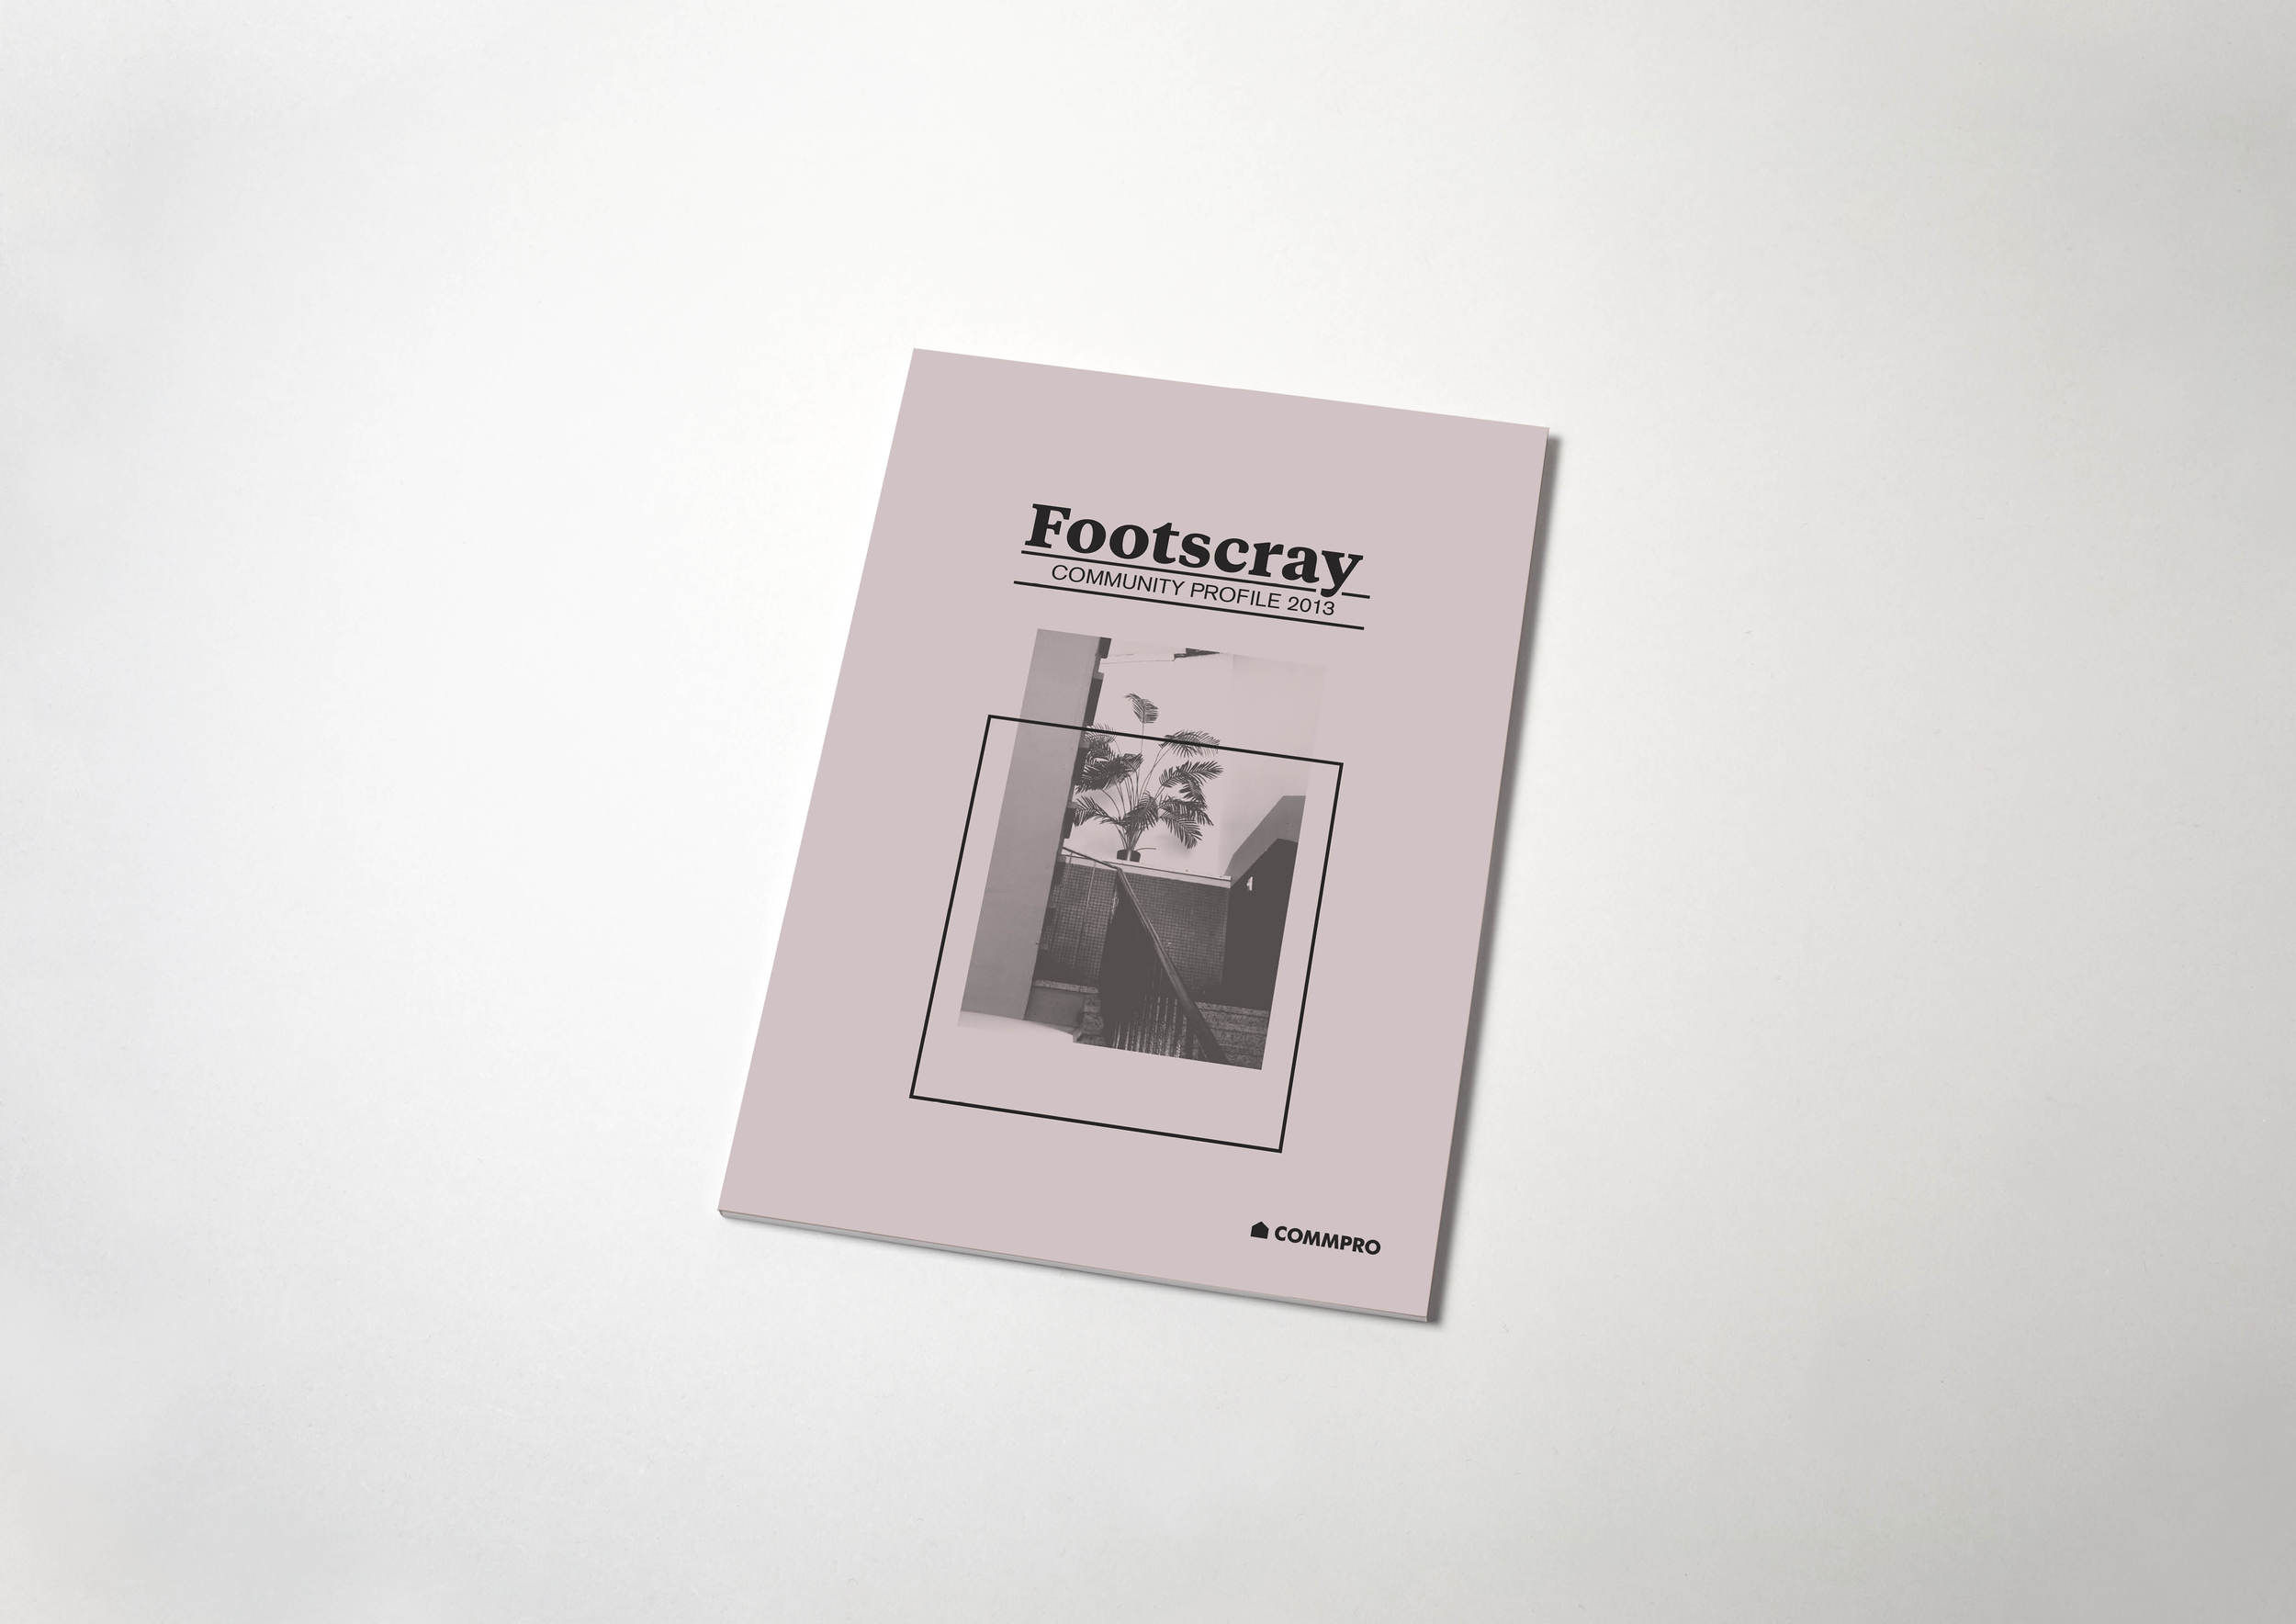 Footscray Community Profile